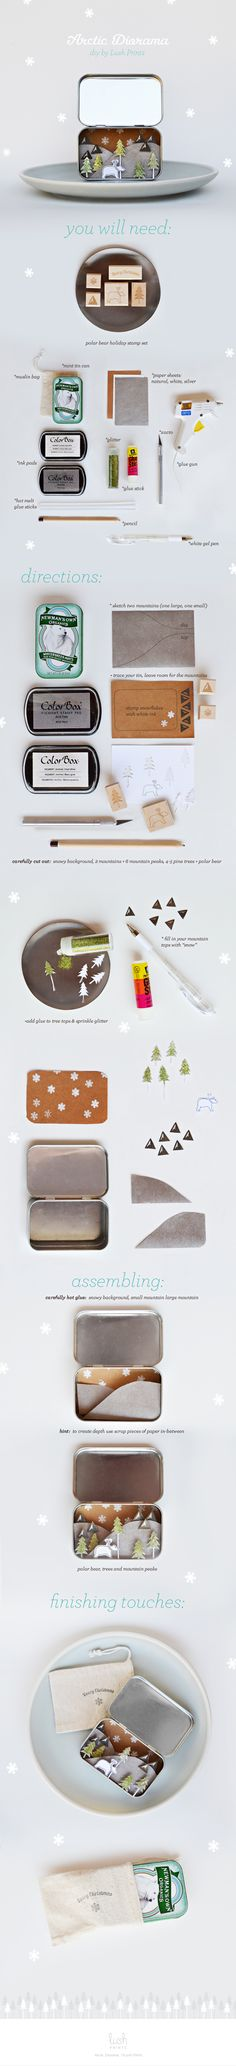 DIY: Arctic Diorama Tutorial using Polar Bear Holiday Stamp Set from Lush Prints